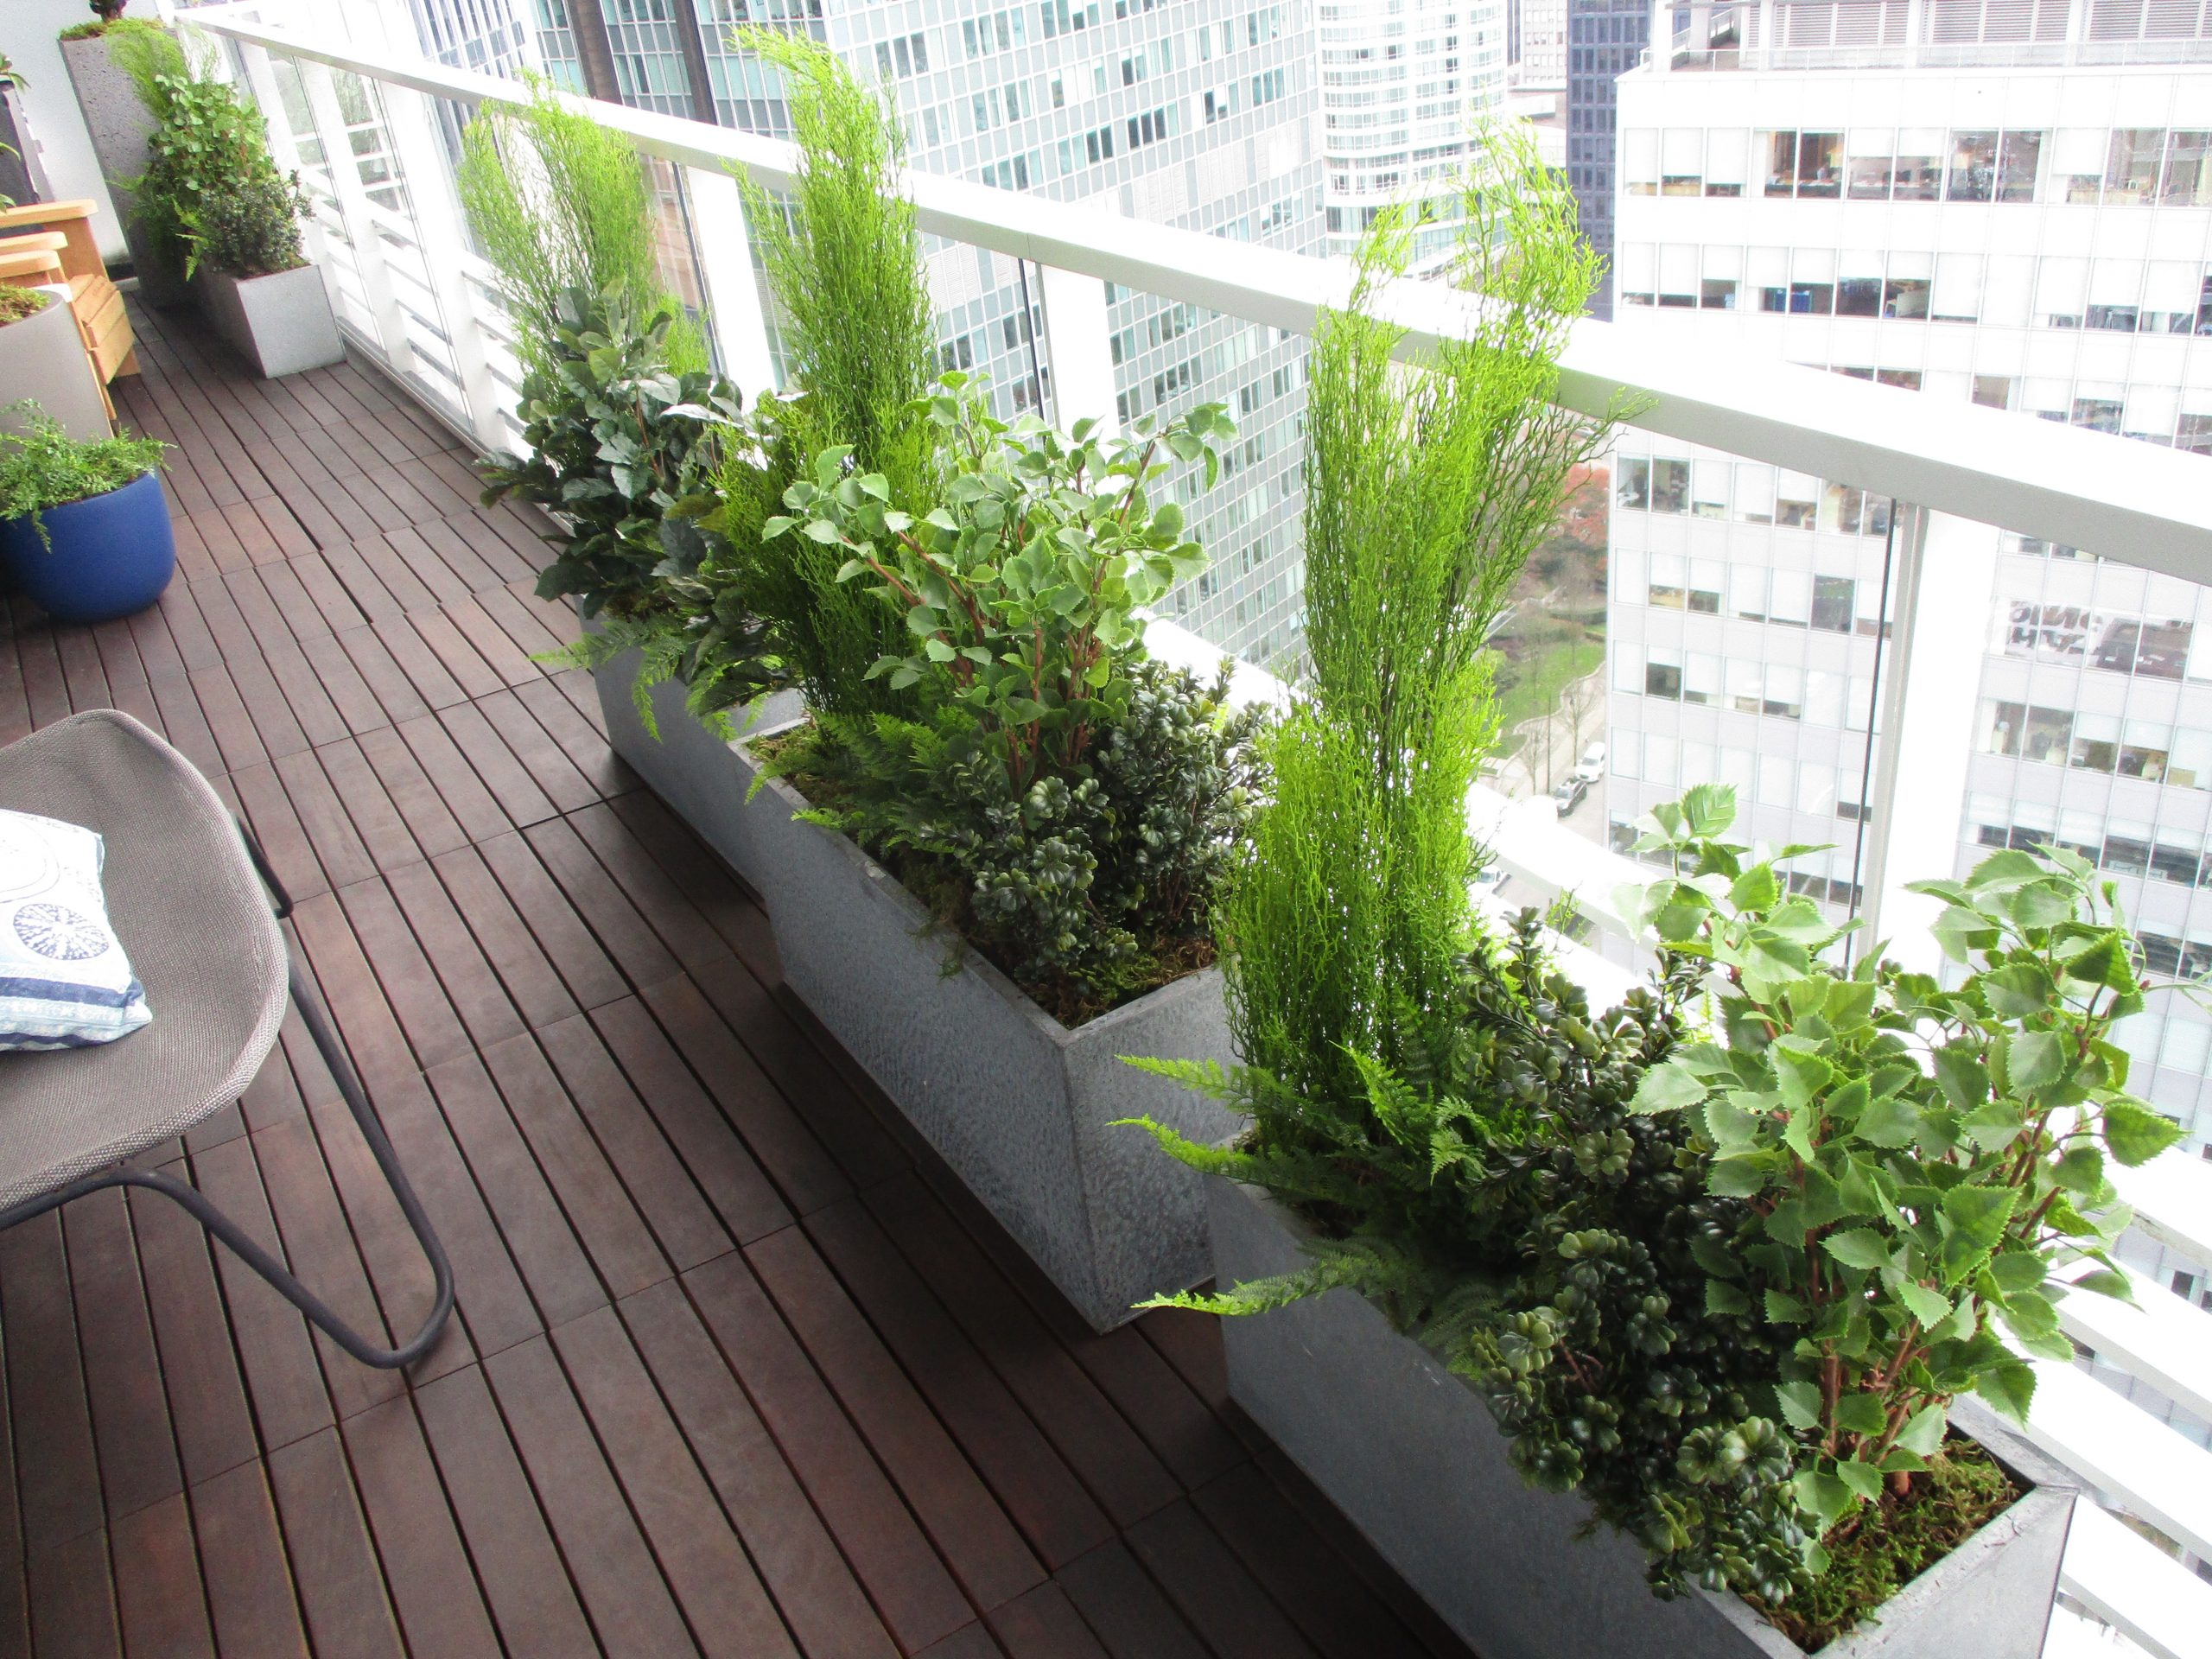 Rectangular metal planters filled with mixed west coast greenery for residential patio design